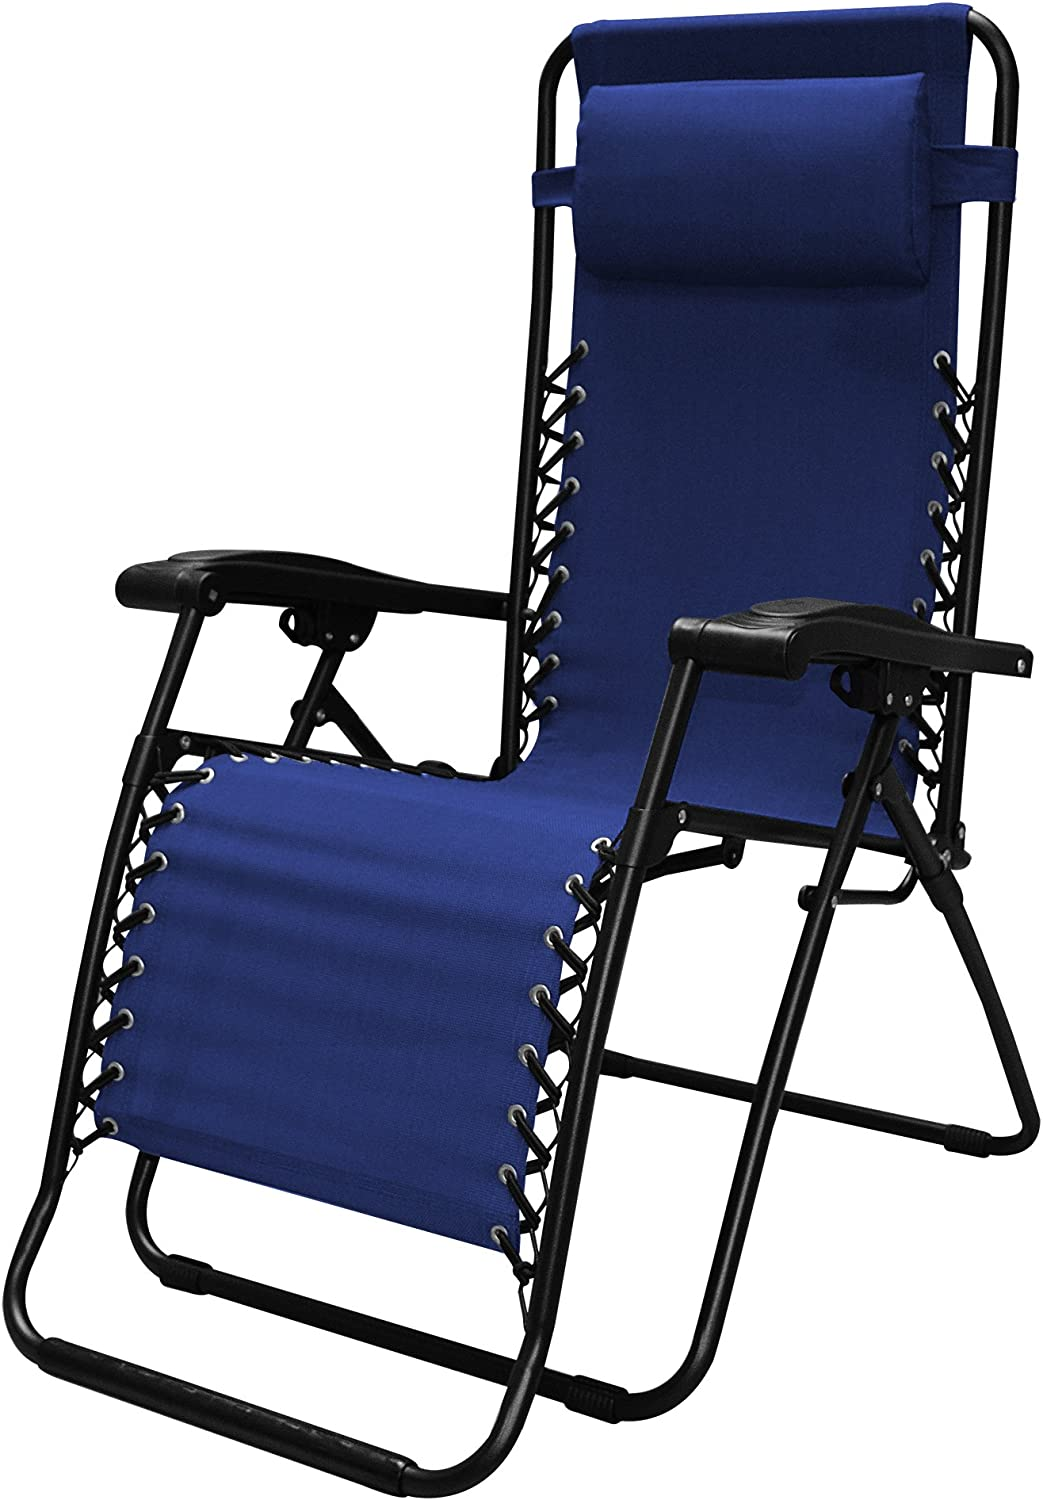 Caravan Canopy Sports Infinity Blue Zero Gravity Chair